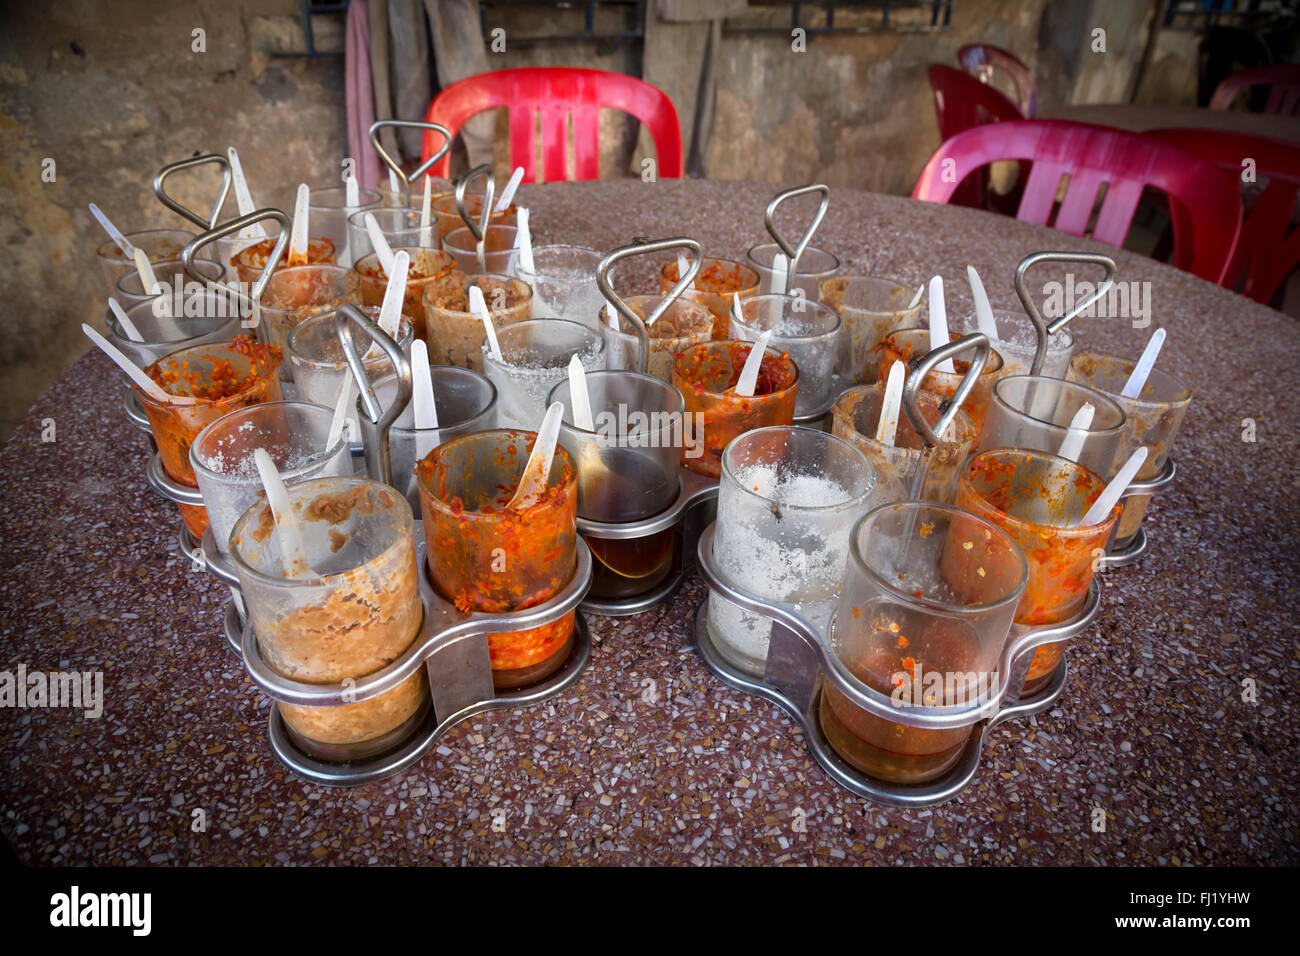 Spices and chilli peppers in glasses on a table in a restaurant of Kampot , Cambodia - Stock Image